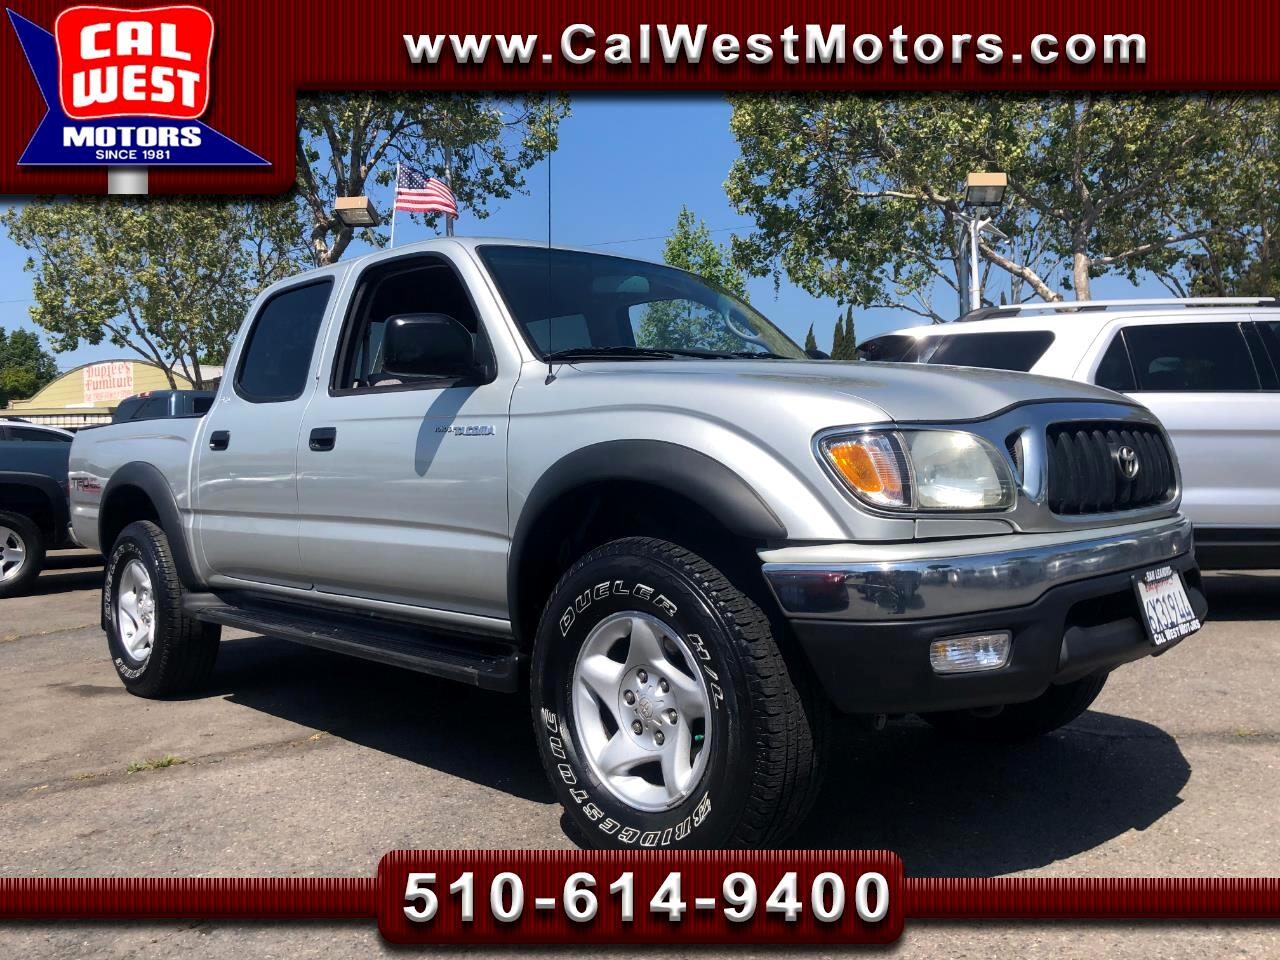 2002 Toyota Tacoma 4WD Double Cab V6 TRDOffRoad 1Owner LoMiles Nice